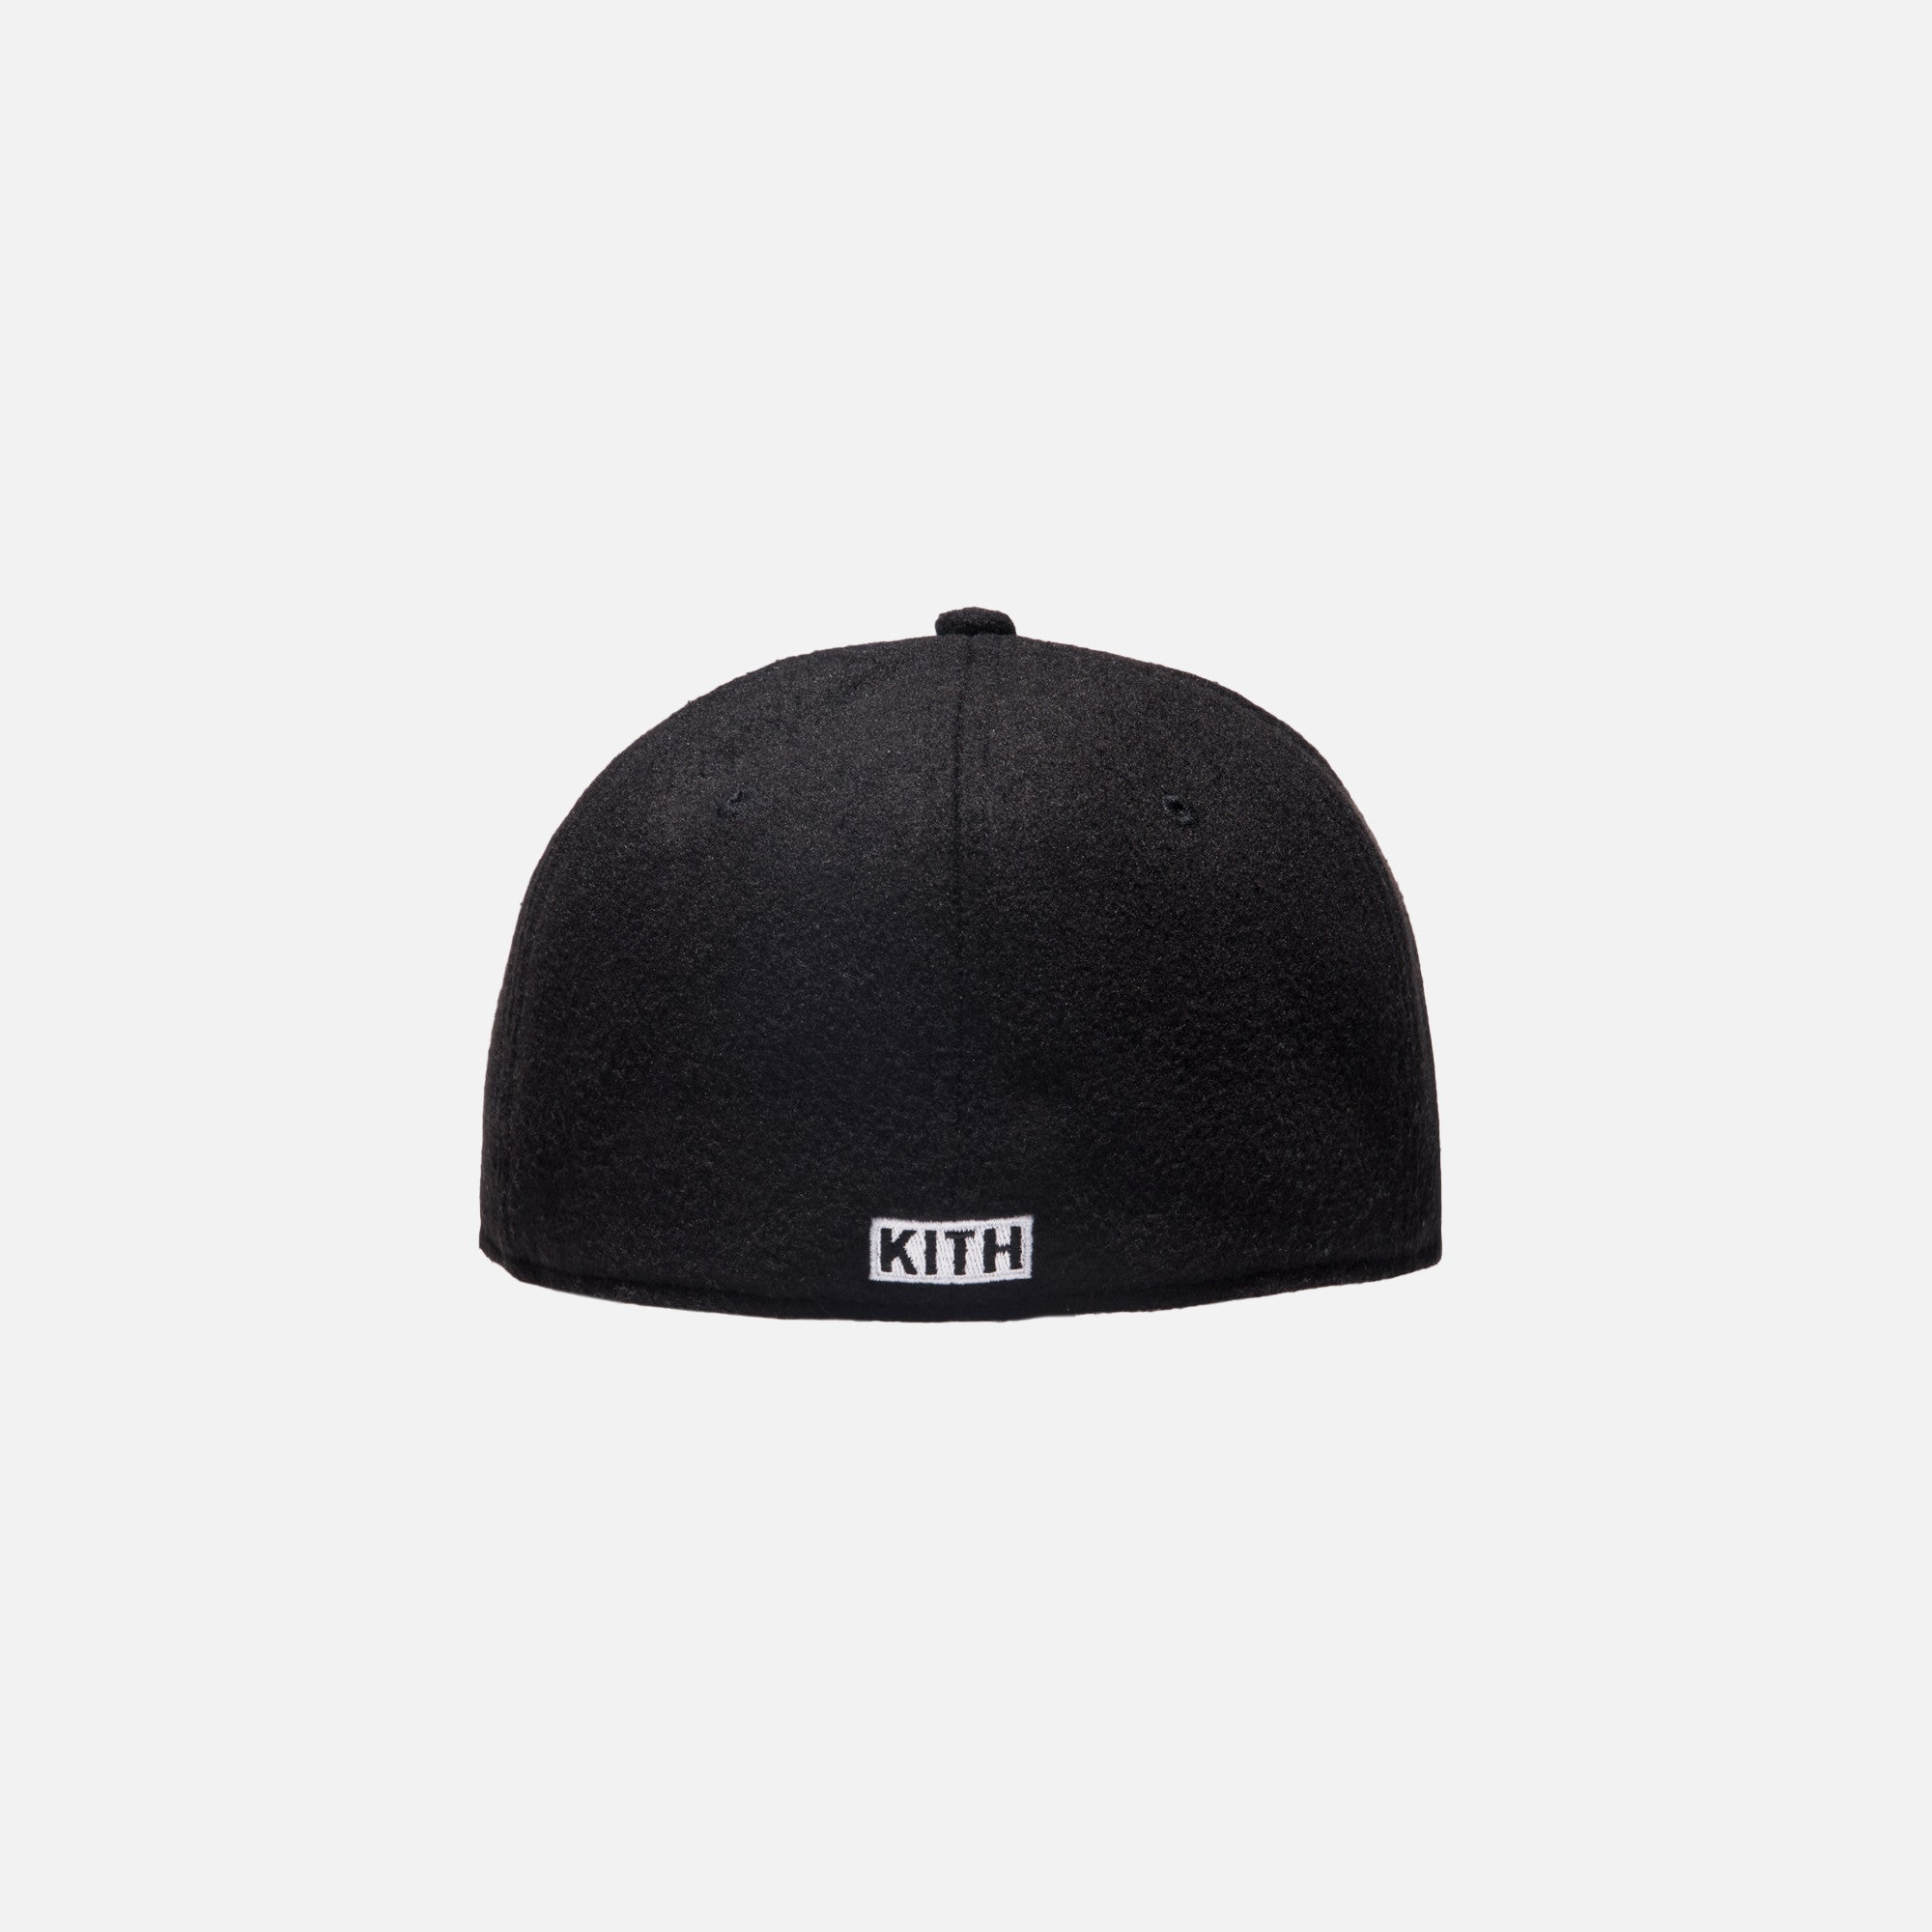 Kith Wool Fitted Cap - Black